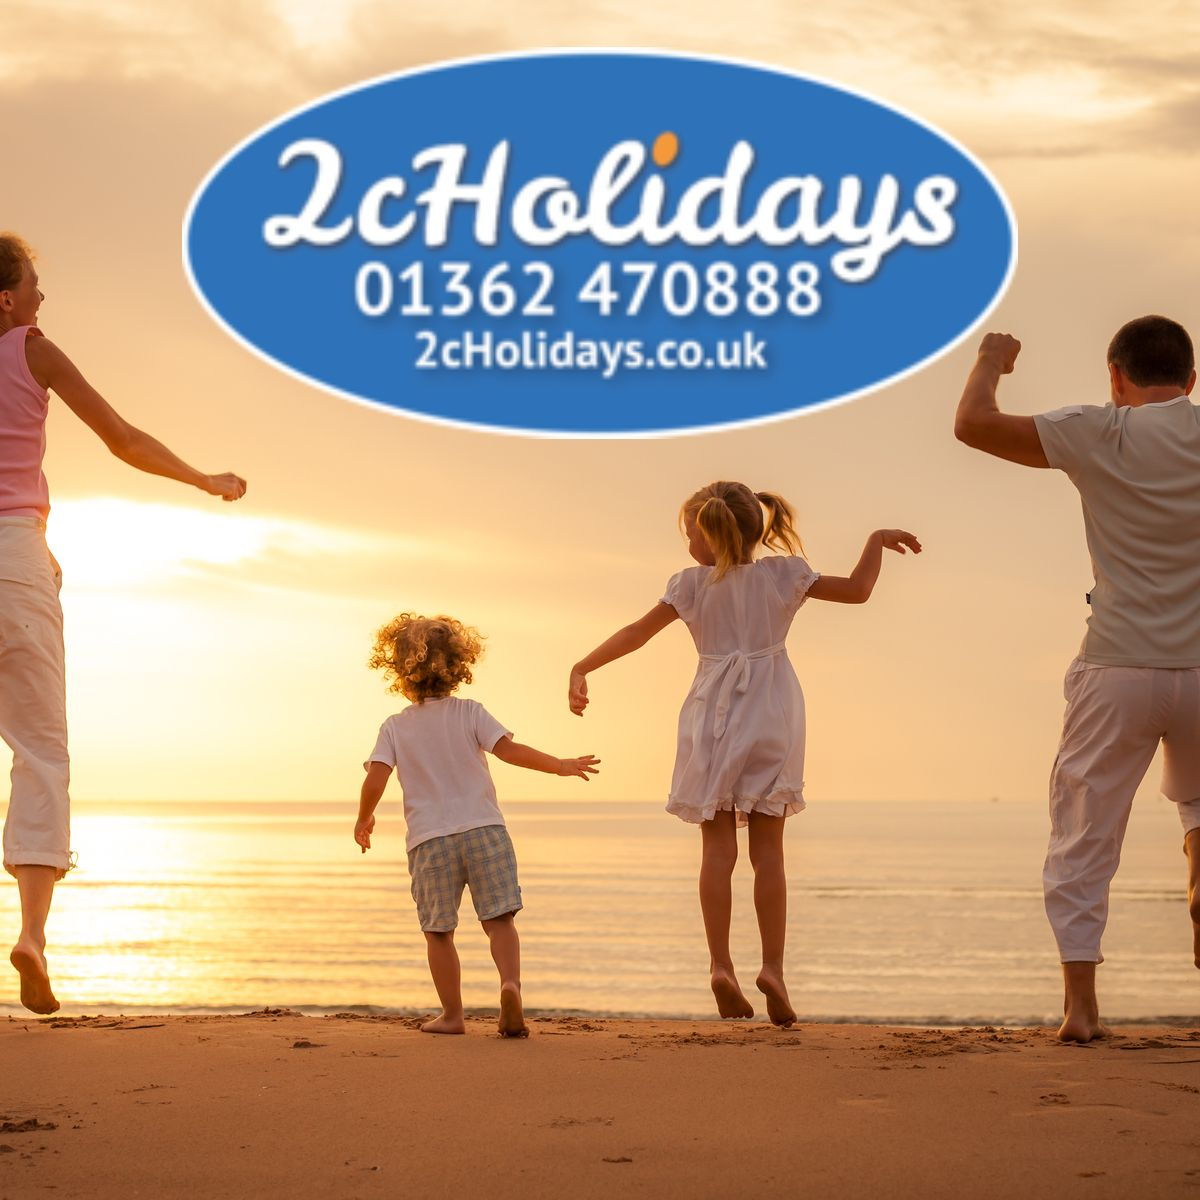 Fancy a beach break for July onwards. Beach breaks available along the East coast. 15% off beach breaks and flexible check in days too. Book a beach break for 2 nights and and enjoy over 40 locations by the beach. #beach #breaks #eastcoast #greatdeals #beaches #discounted #staycation